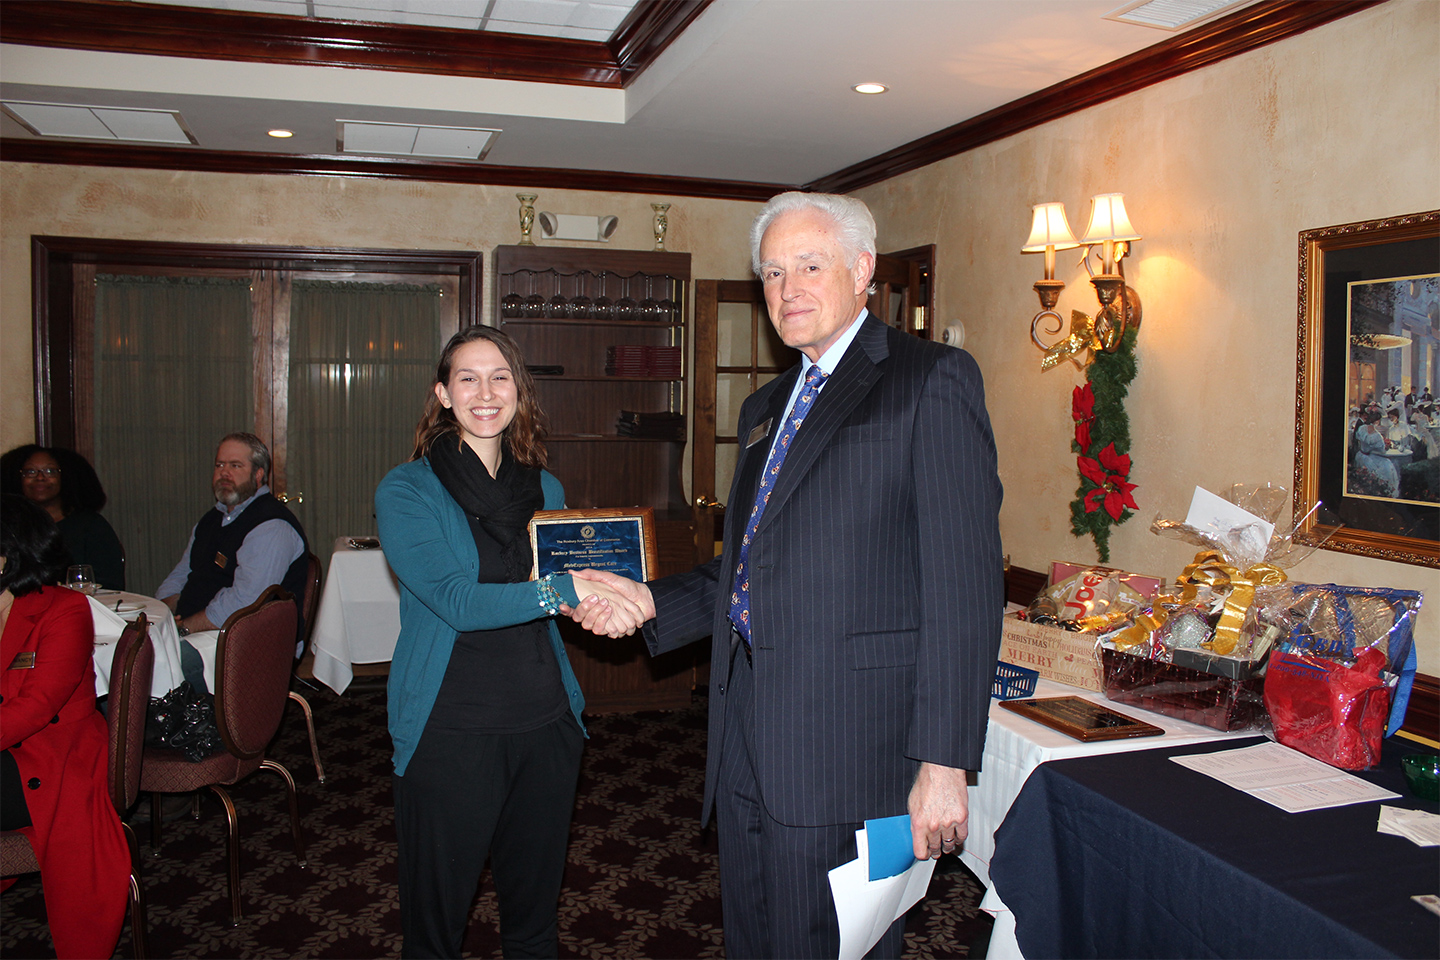 Regina Jewell, of MedExpress Urgent Care in Ledgewood, accepts the award for interior improvements.